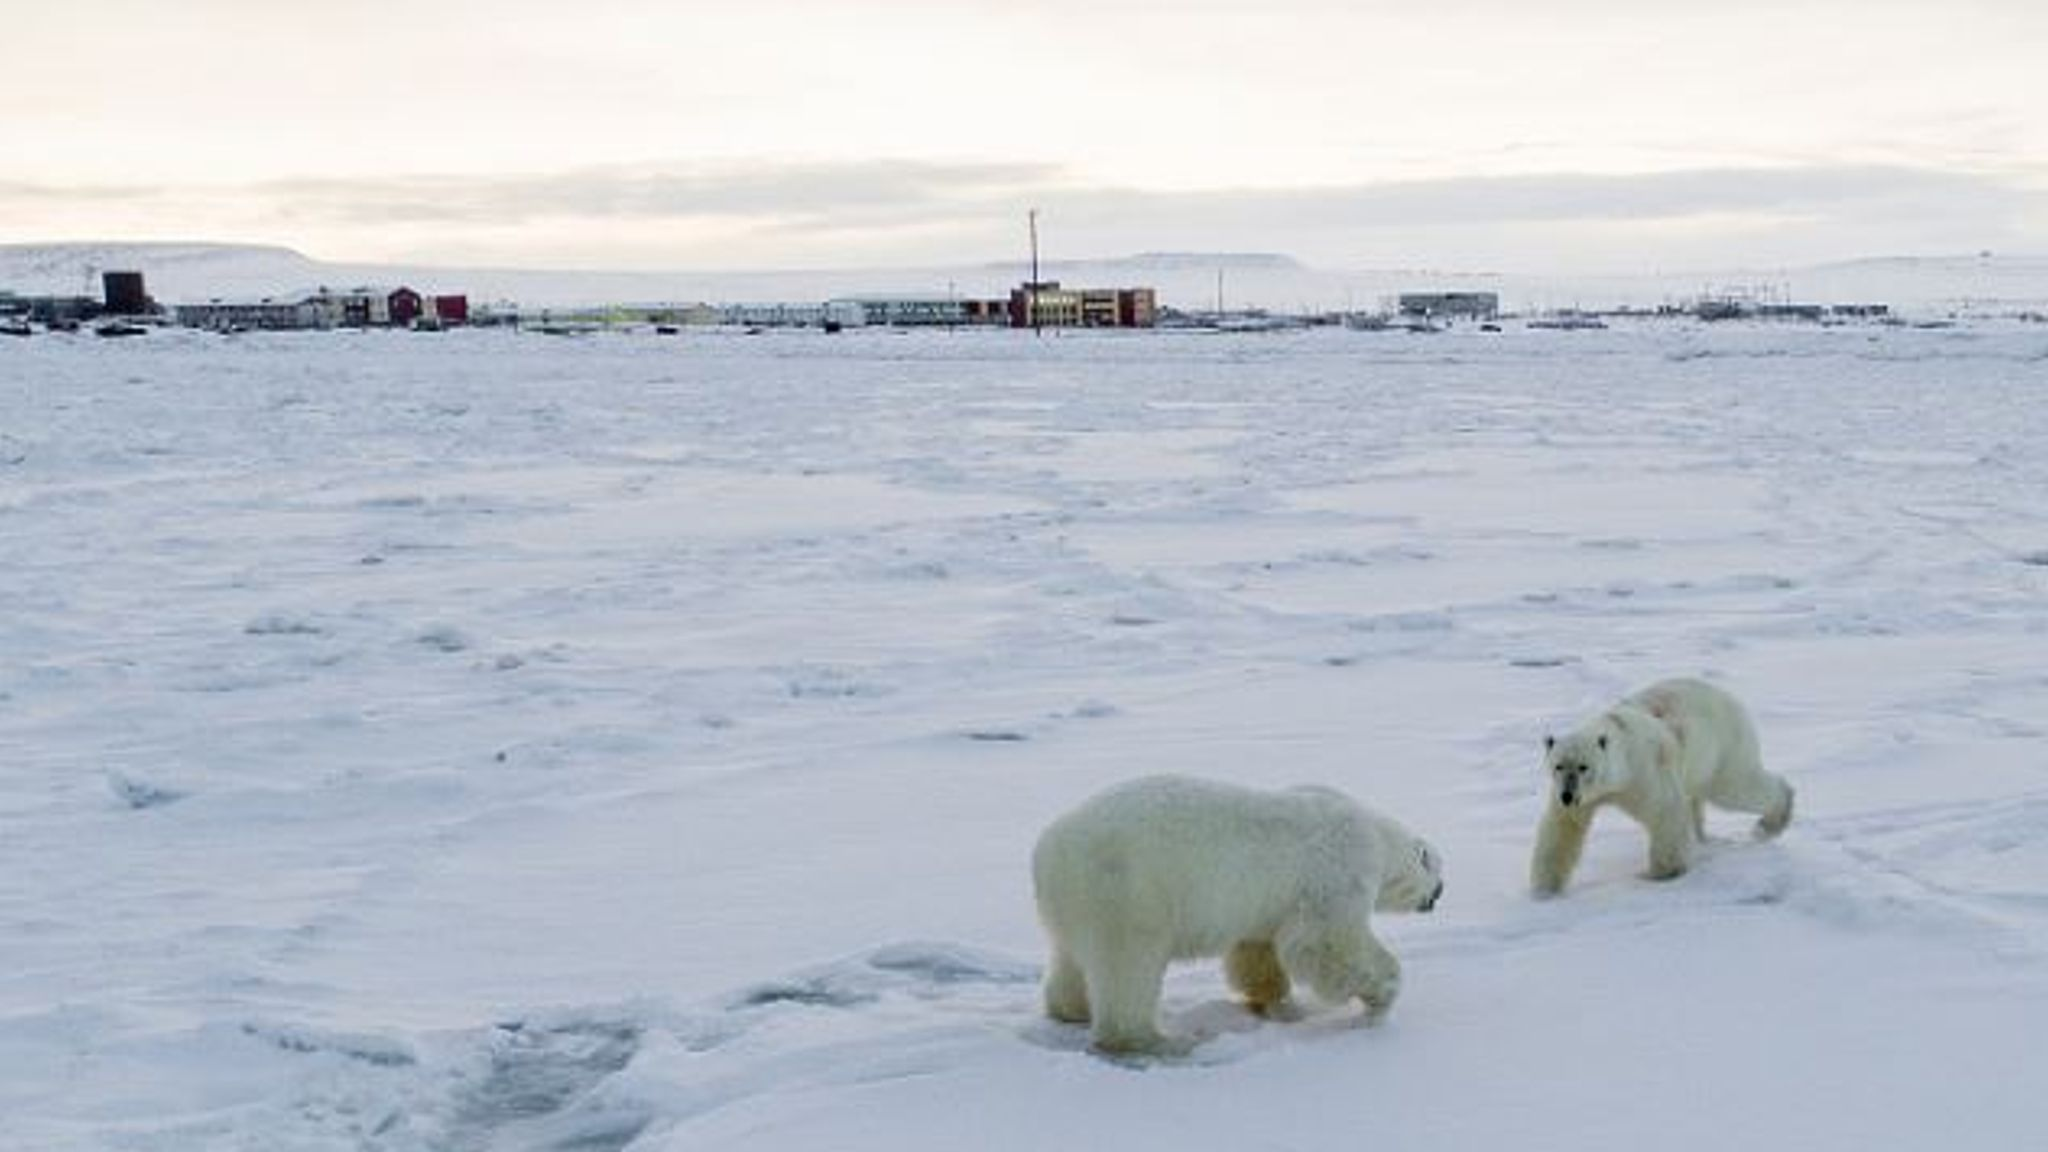 More than 50 hungry polar bears 'invade Russian village', says WWF